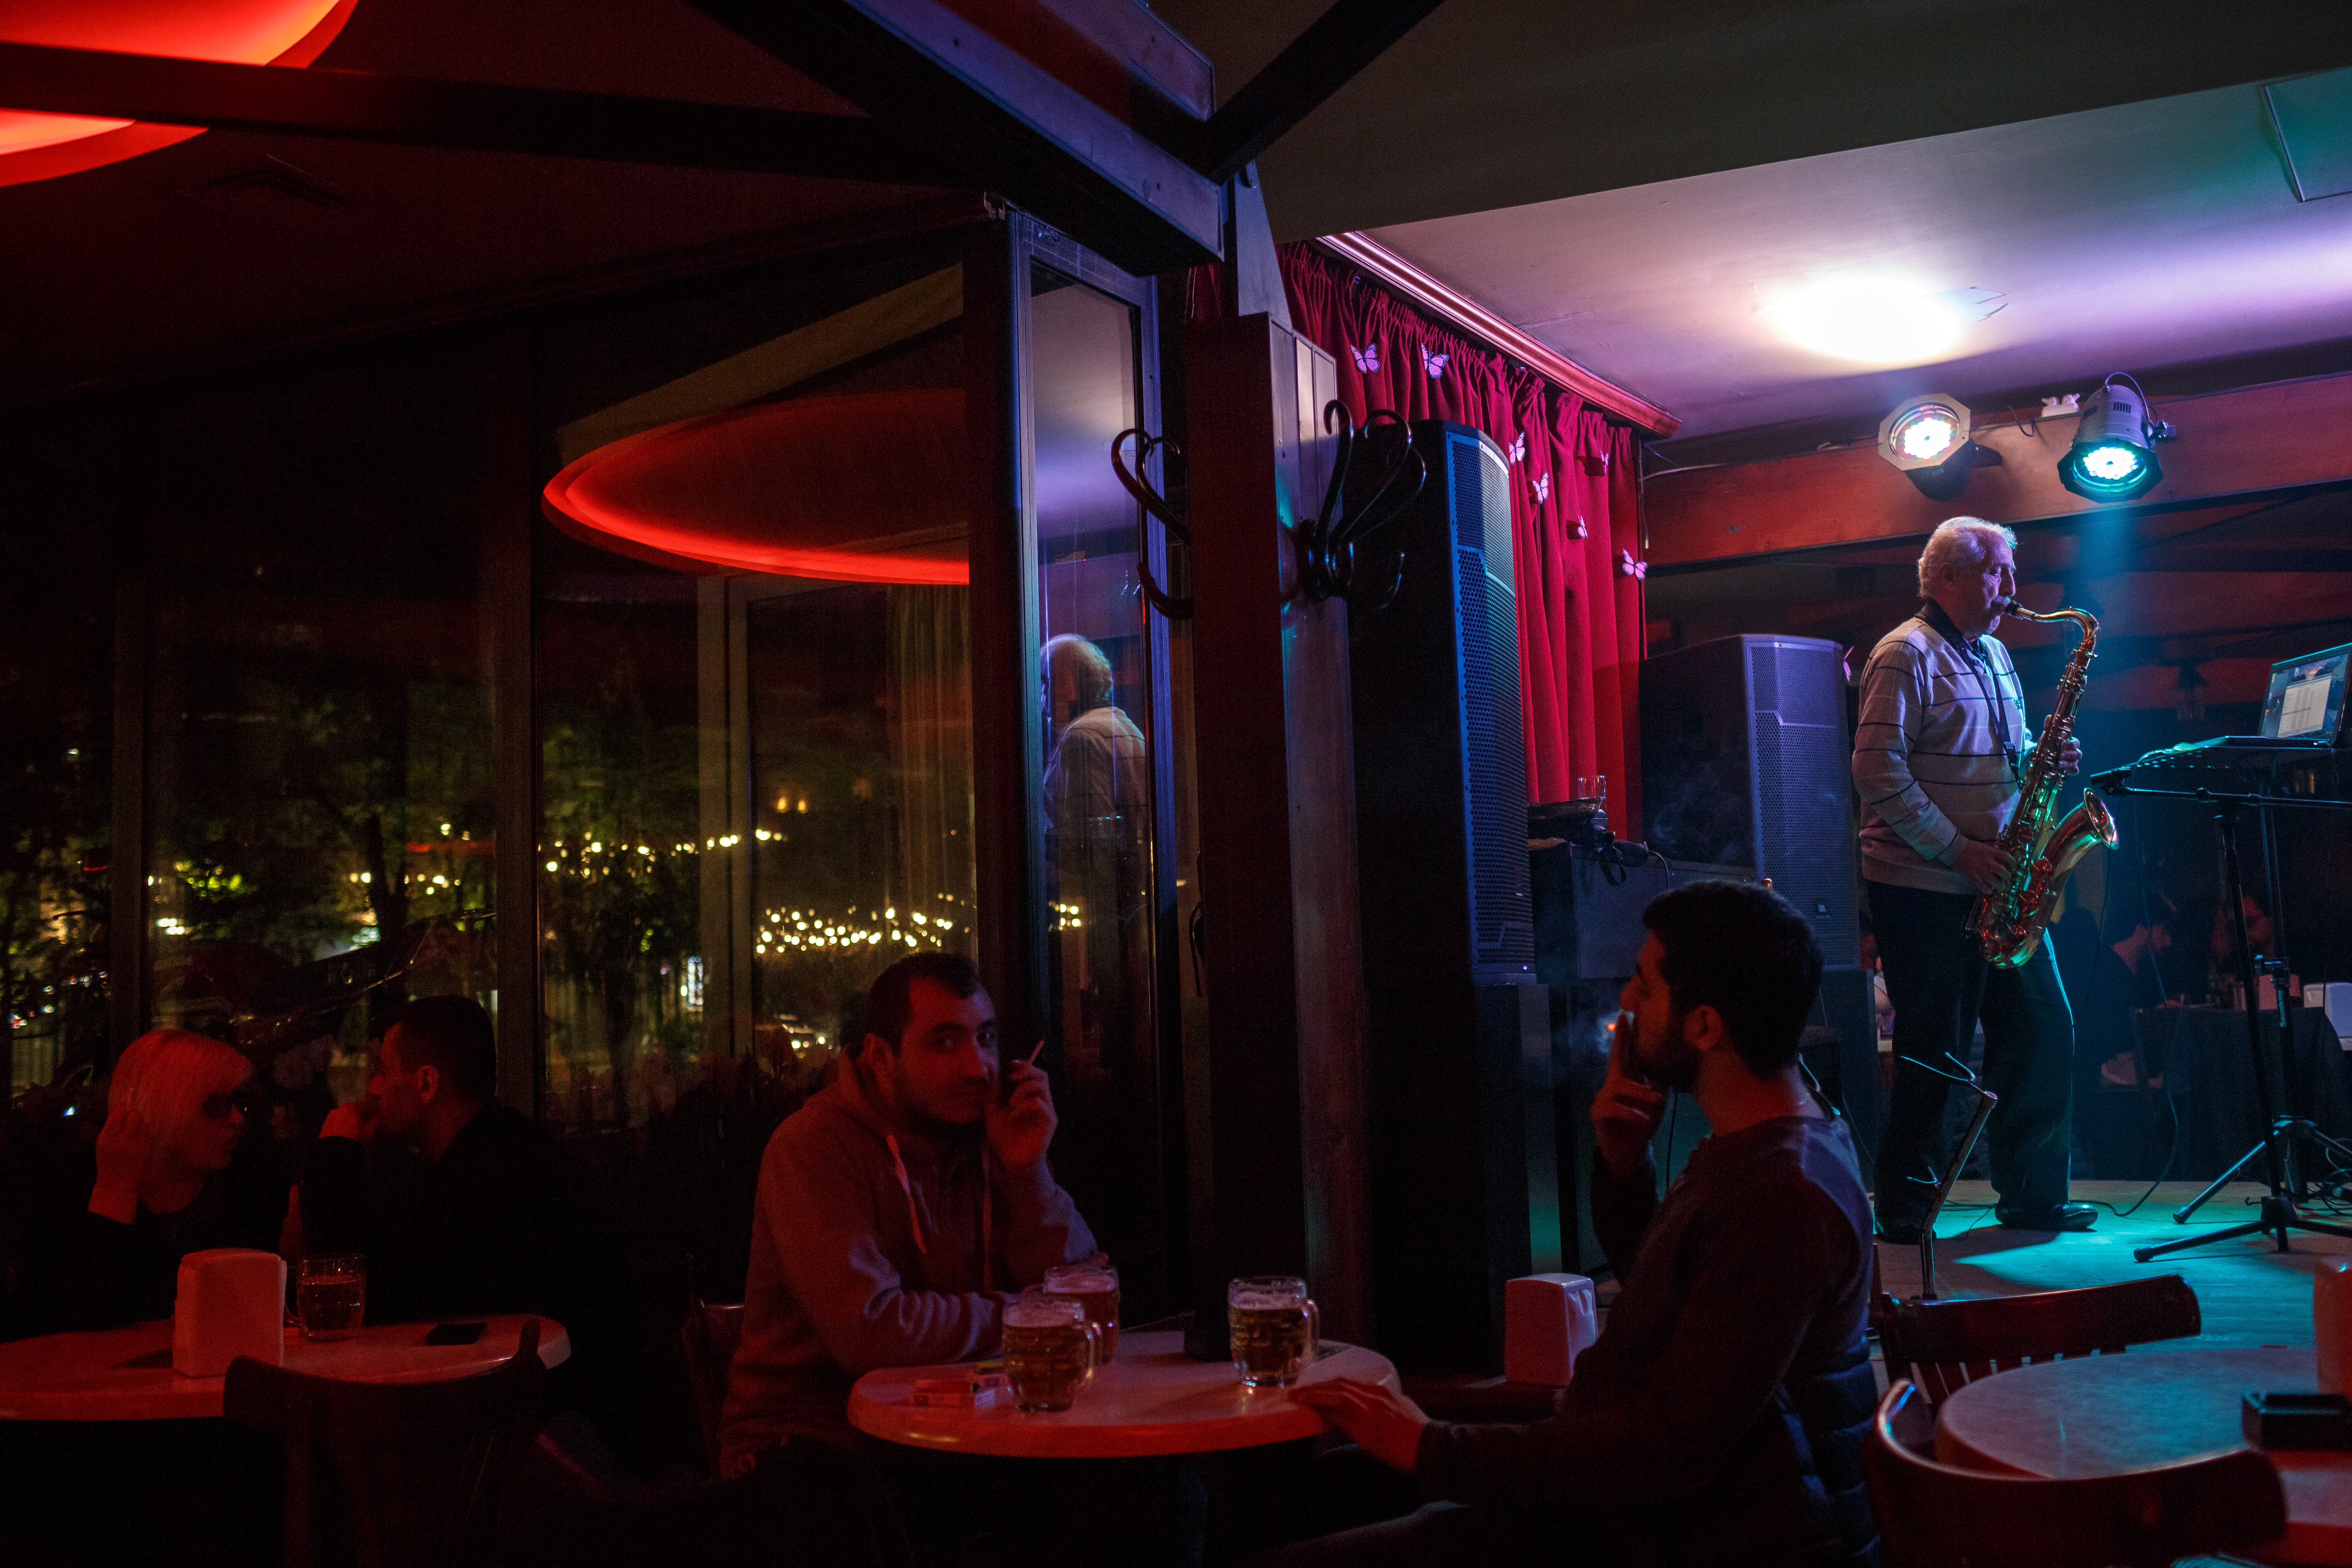 A local musician plays the saxophone at a restaurant in Yerevan.